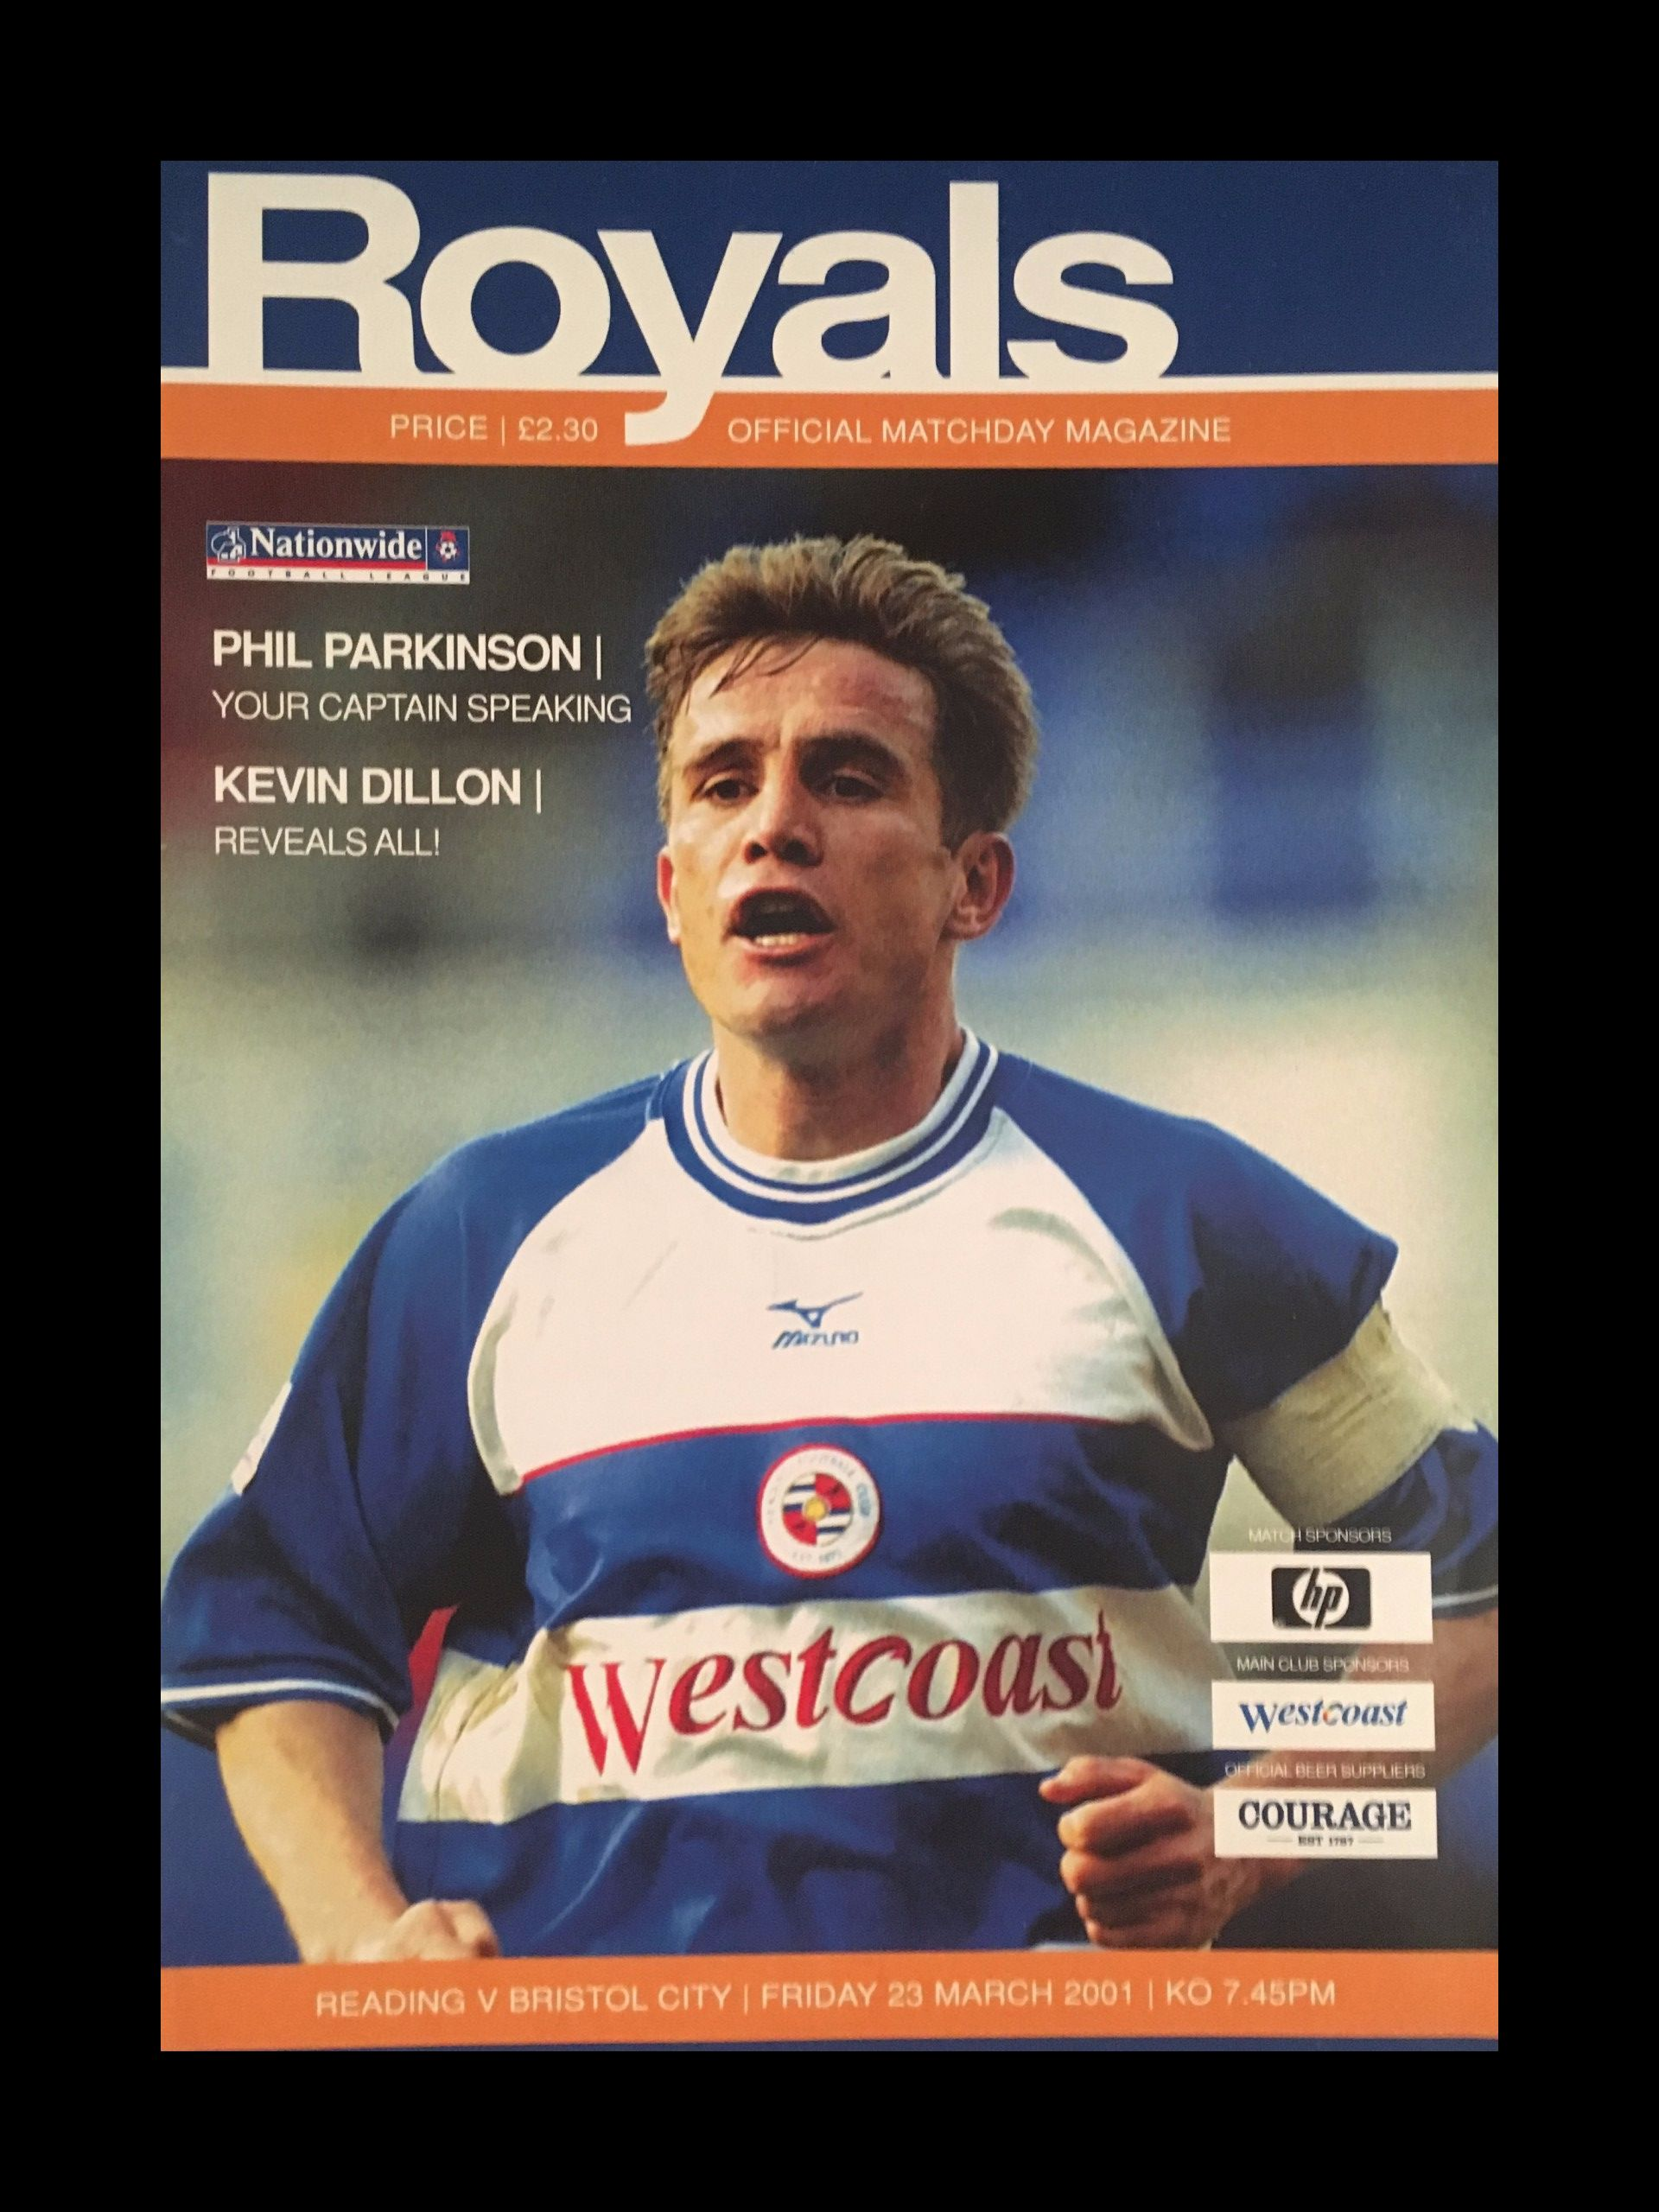 Reading v Bristol City 23-03-2001 Programme